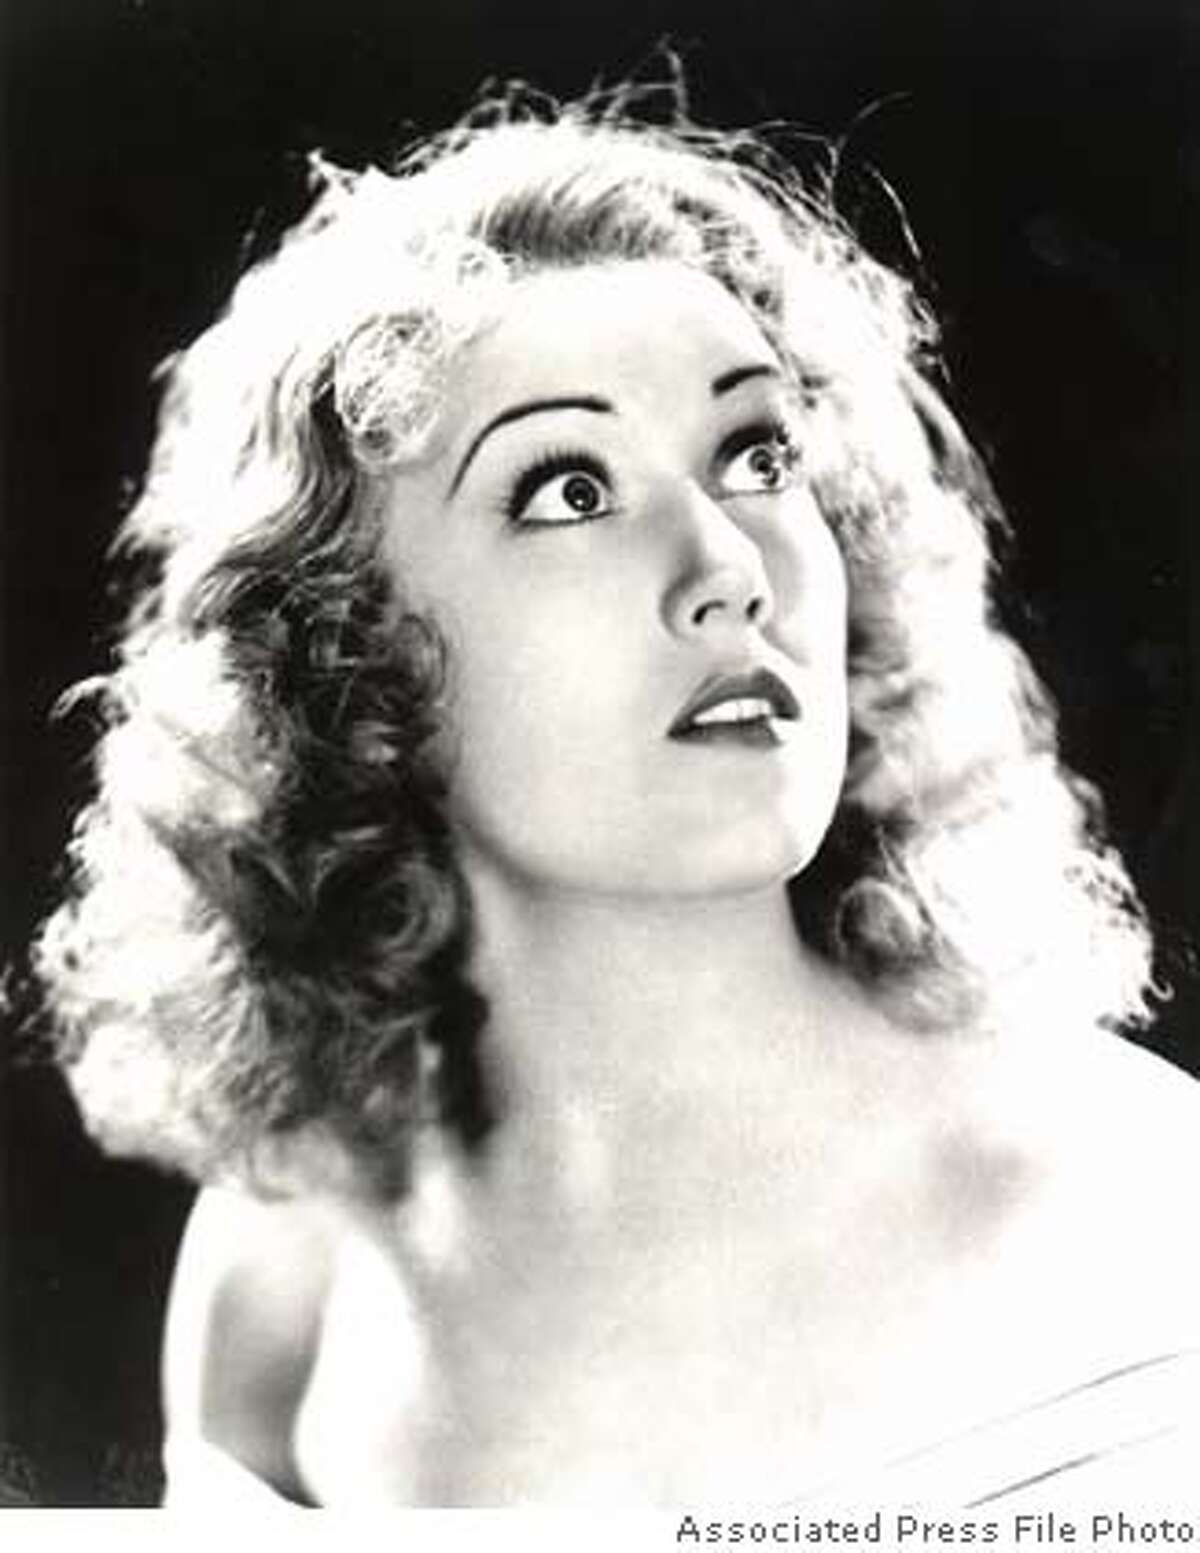 """**FILE**This is an undated picture of Fay Wray, best-remembered as the beautiful woman held by the giant gorilla in """"King Kong,"""" the 1933 classic film. Wray, 96, died Sunday, Aug.8, 2004, at her Manhattan apartment, said Rick McKay, a friend and director of the last film she appeared in.(AP Photo)"""